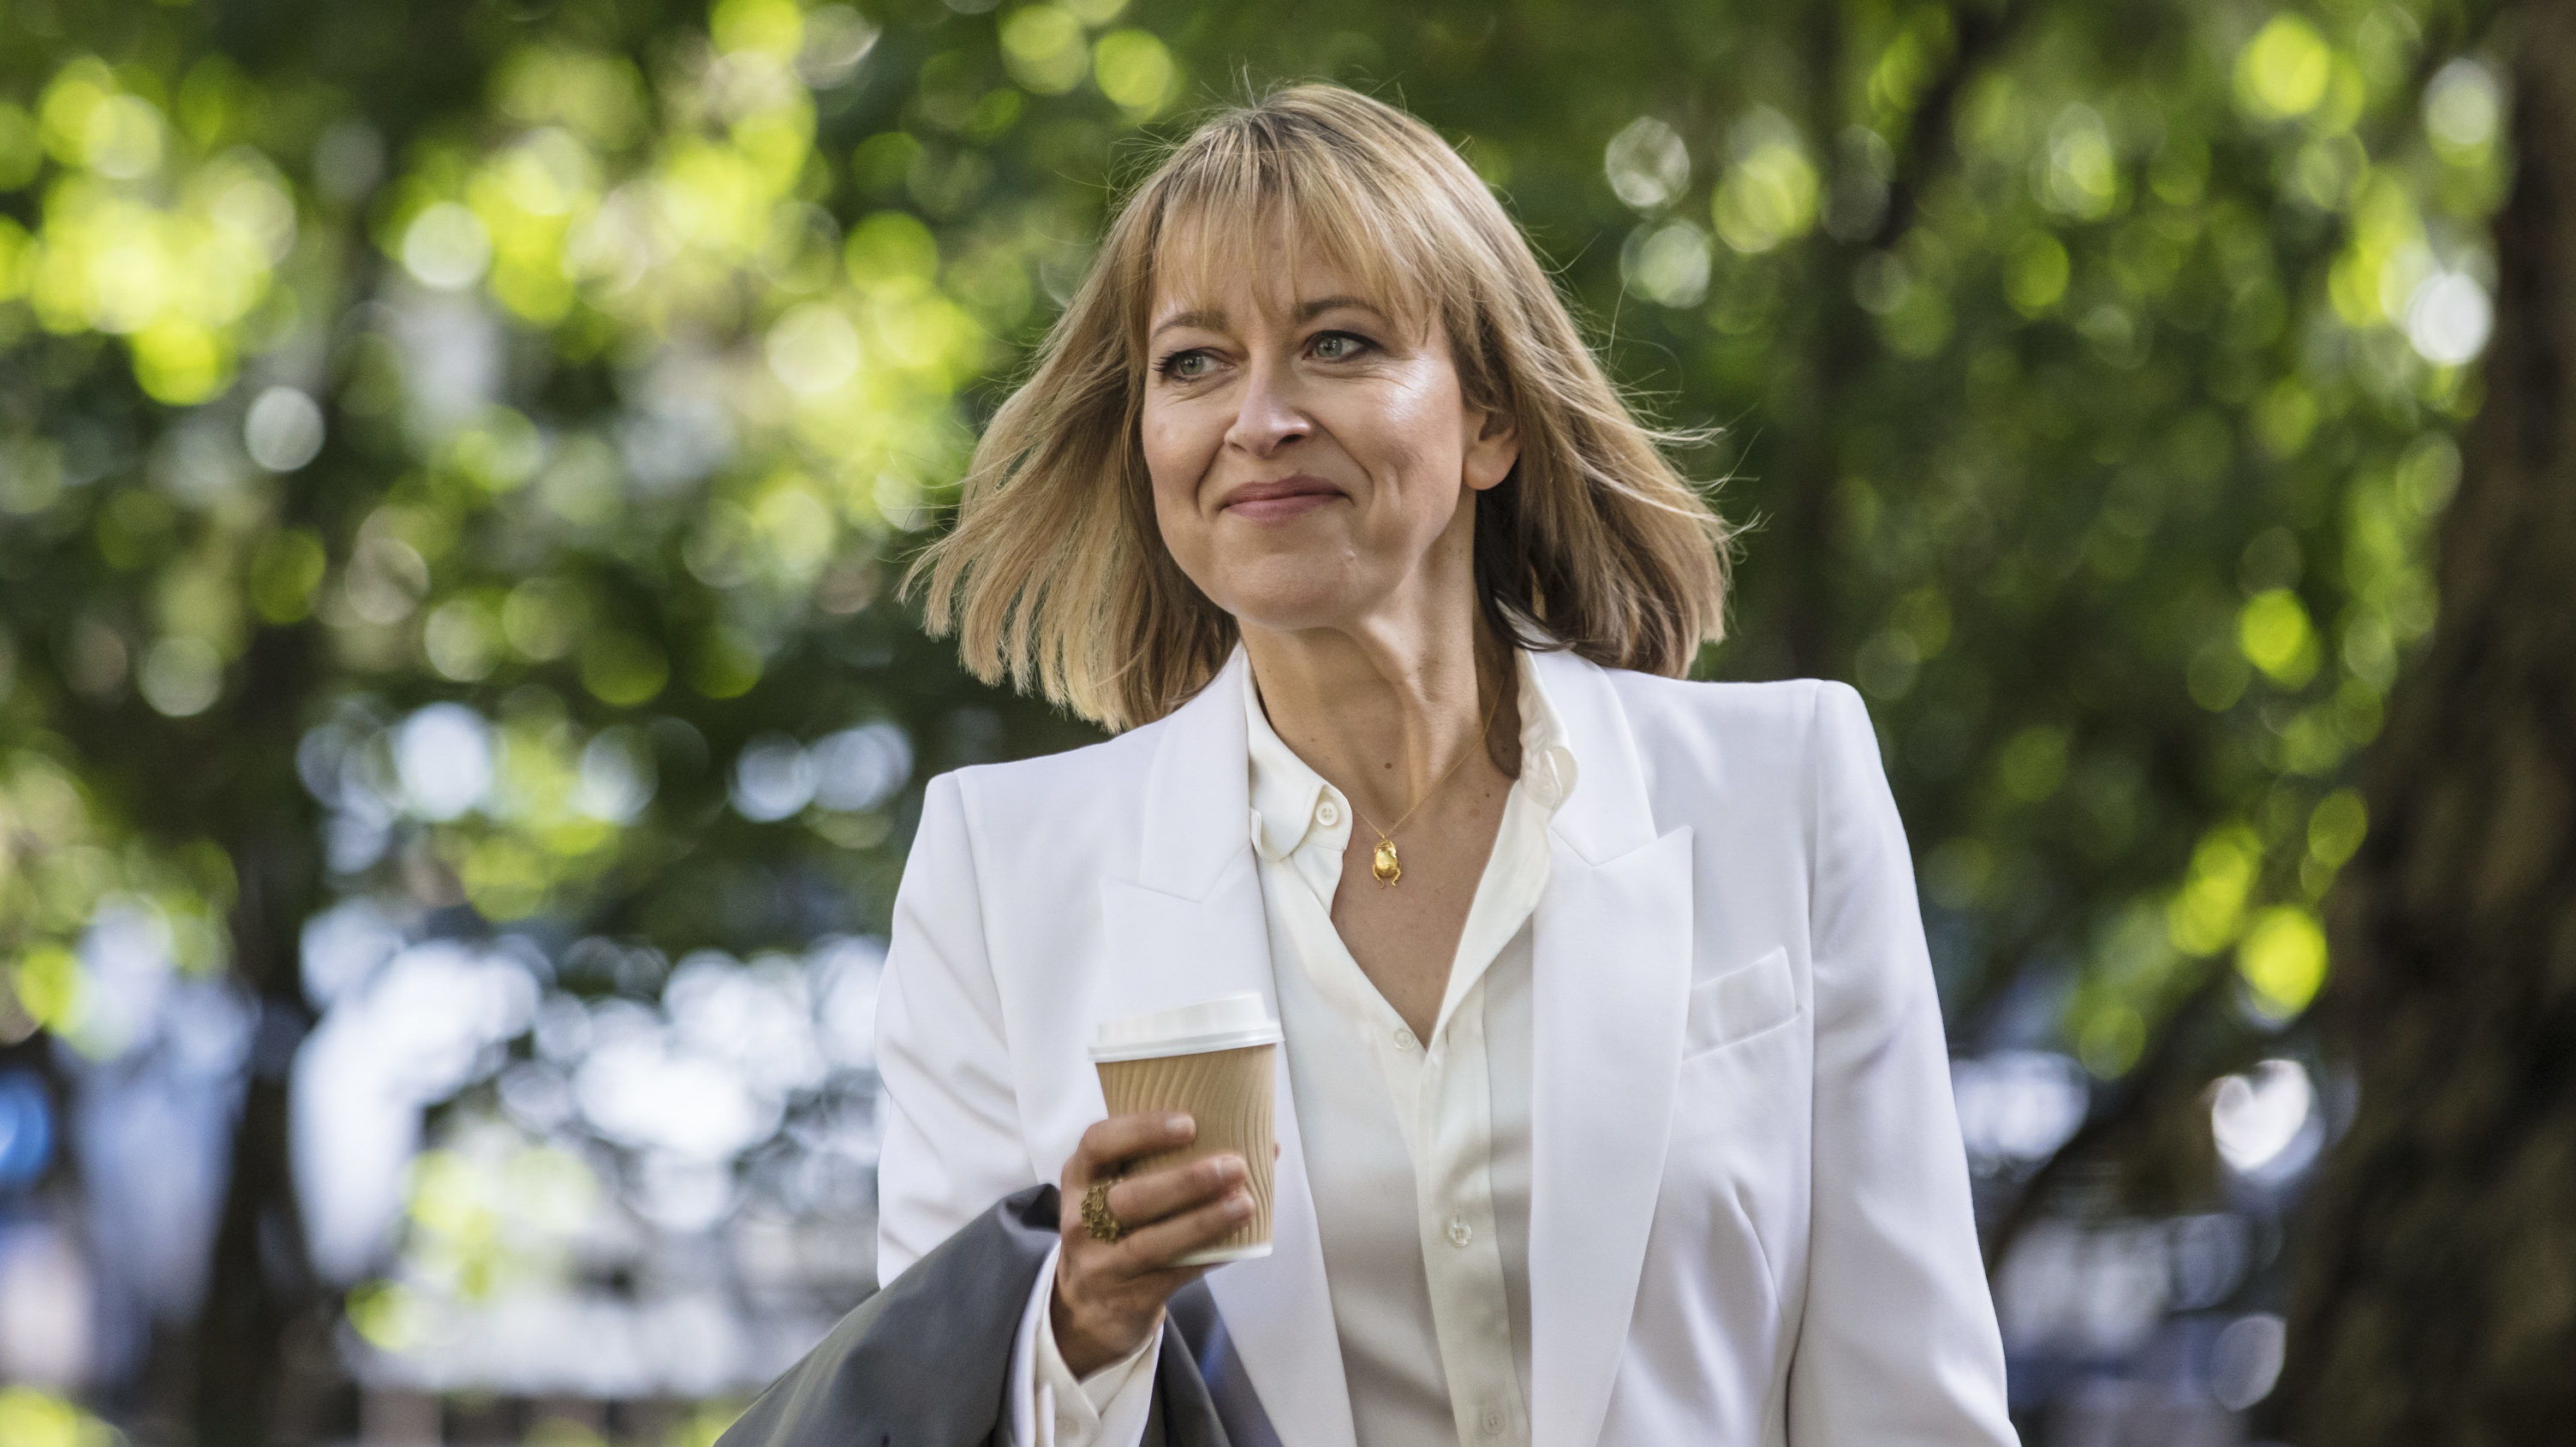 Discussion on this topic: Sonia Bergamasco, nicola-walker/